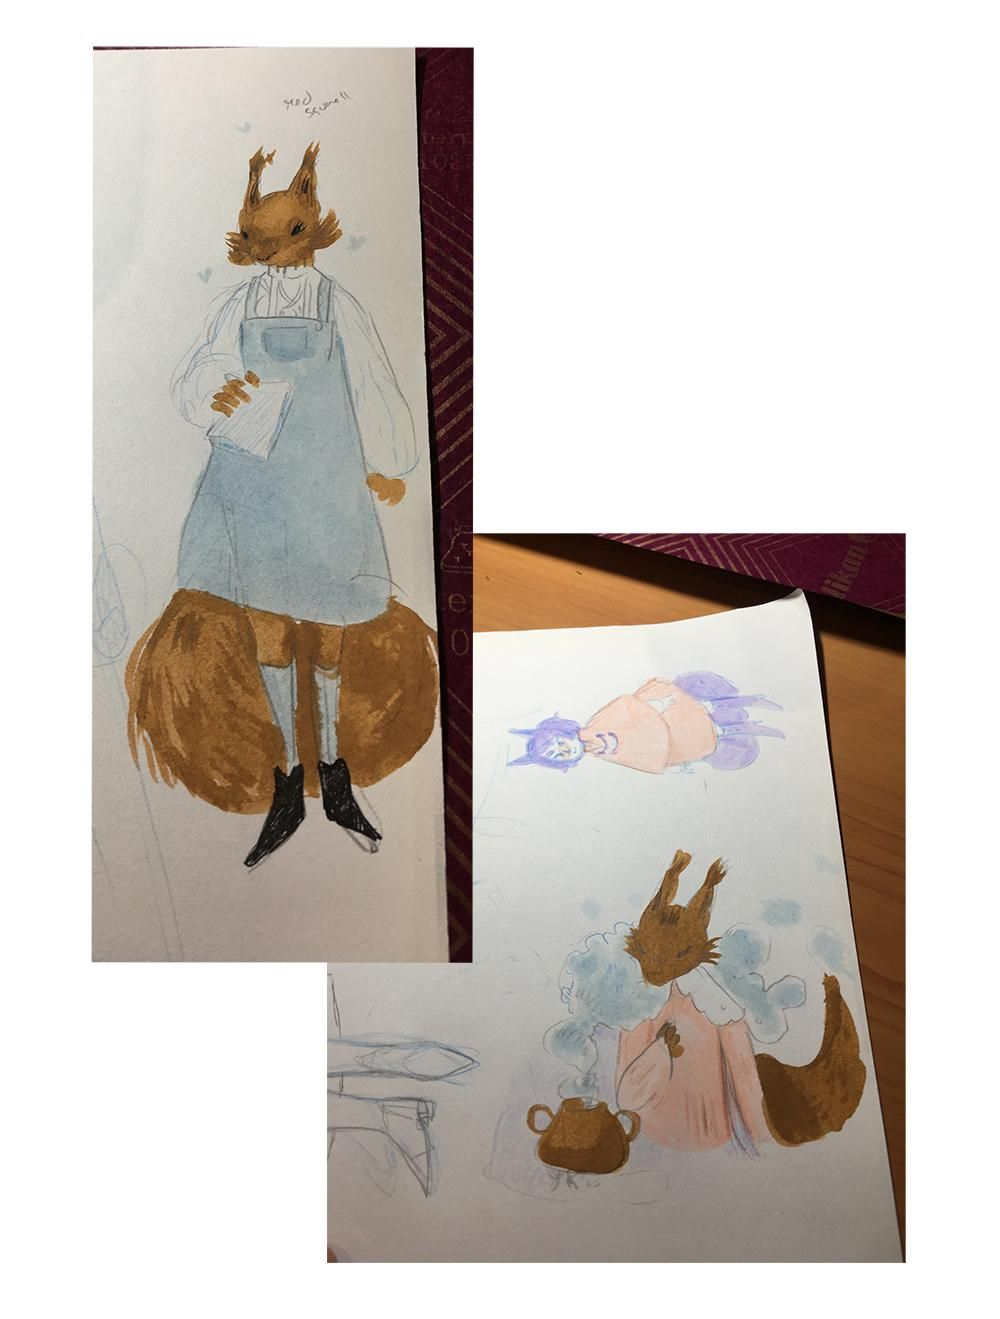 Bunny Prince - image 2 - student project